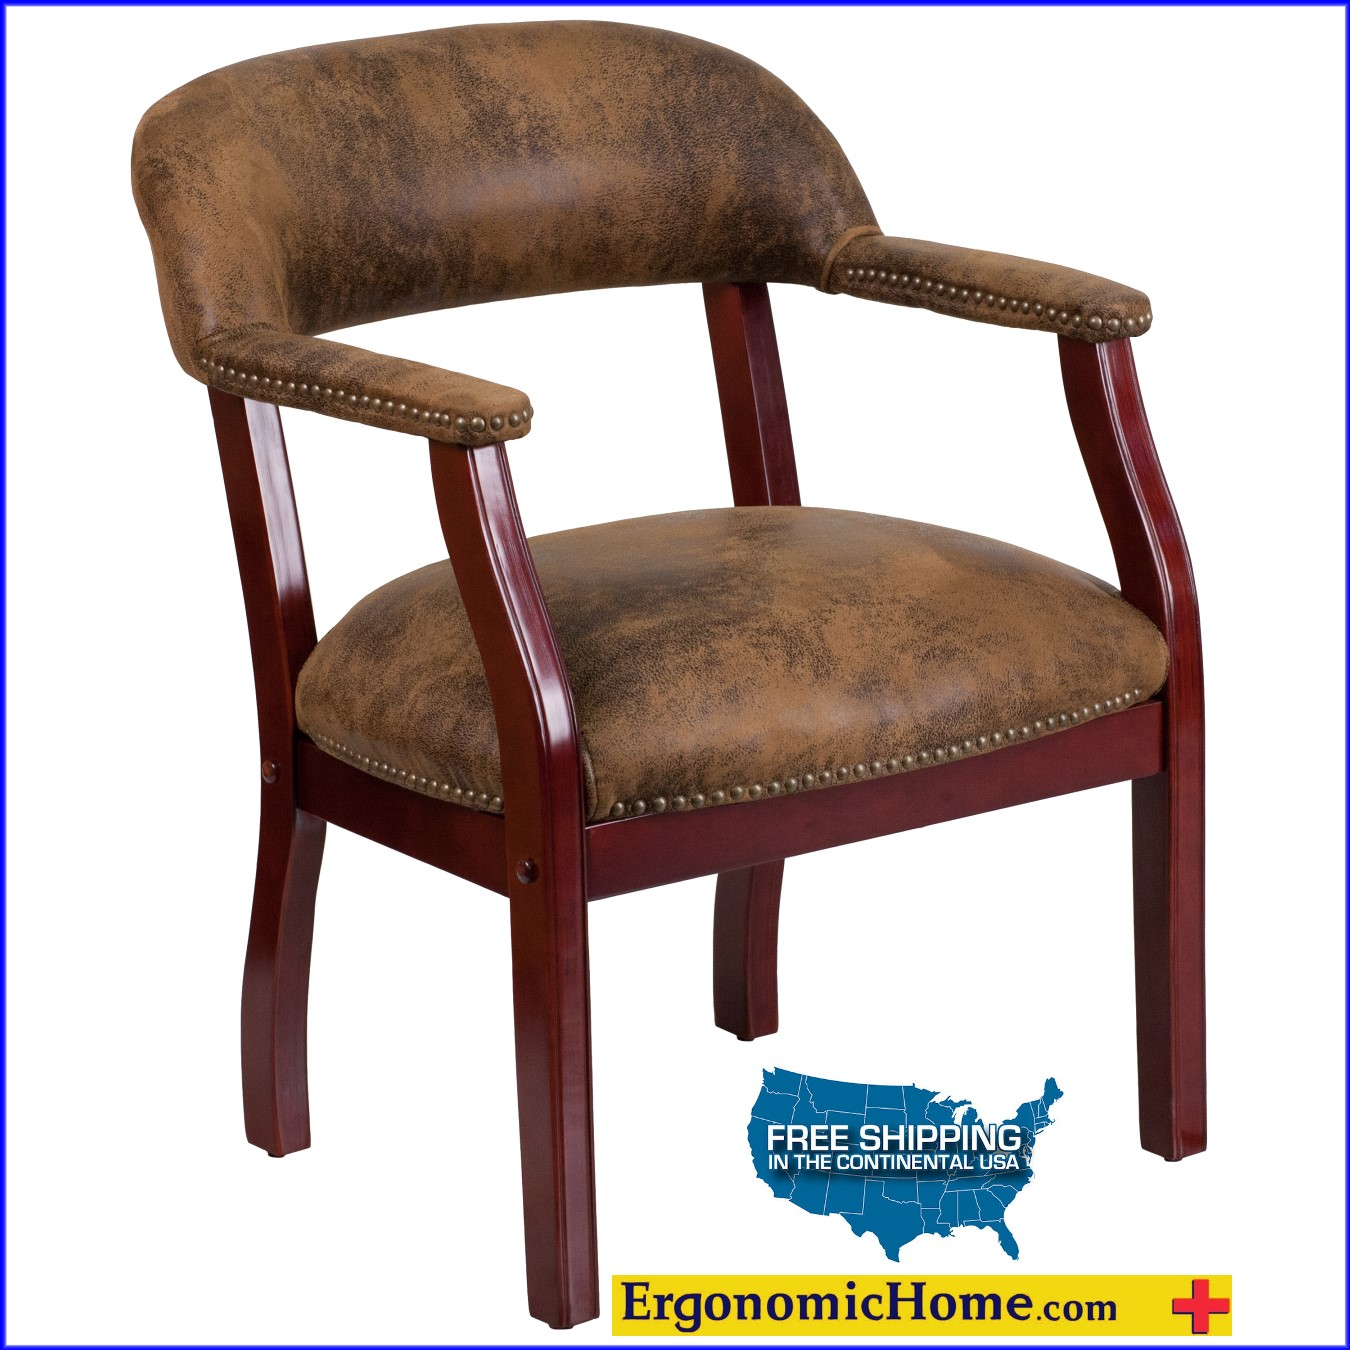 <font color=#c60>Save 50% w/Free Shipping!</font> Bomber Jacket Brown Luxurious Conference Chair B-Z105-BRN-GG <font color=#c60>Read More ... </font>